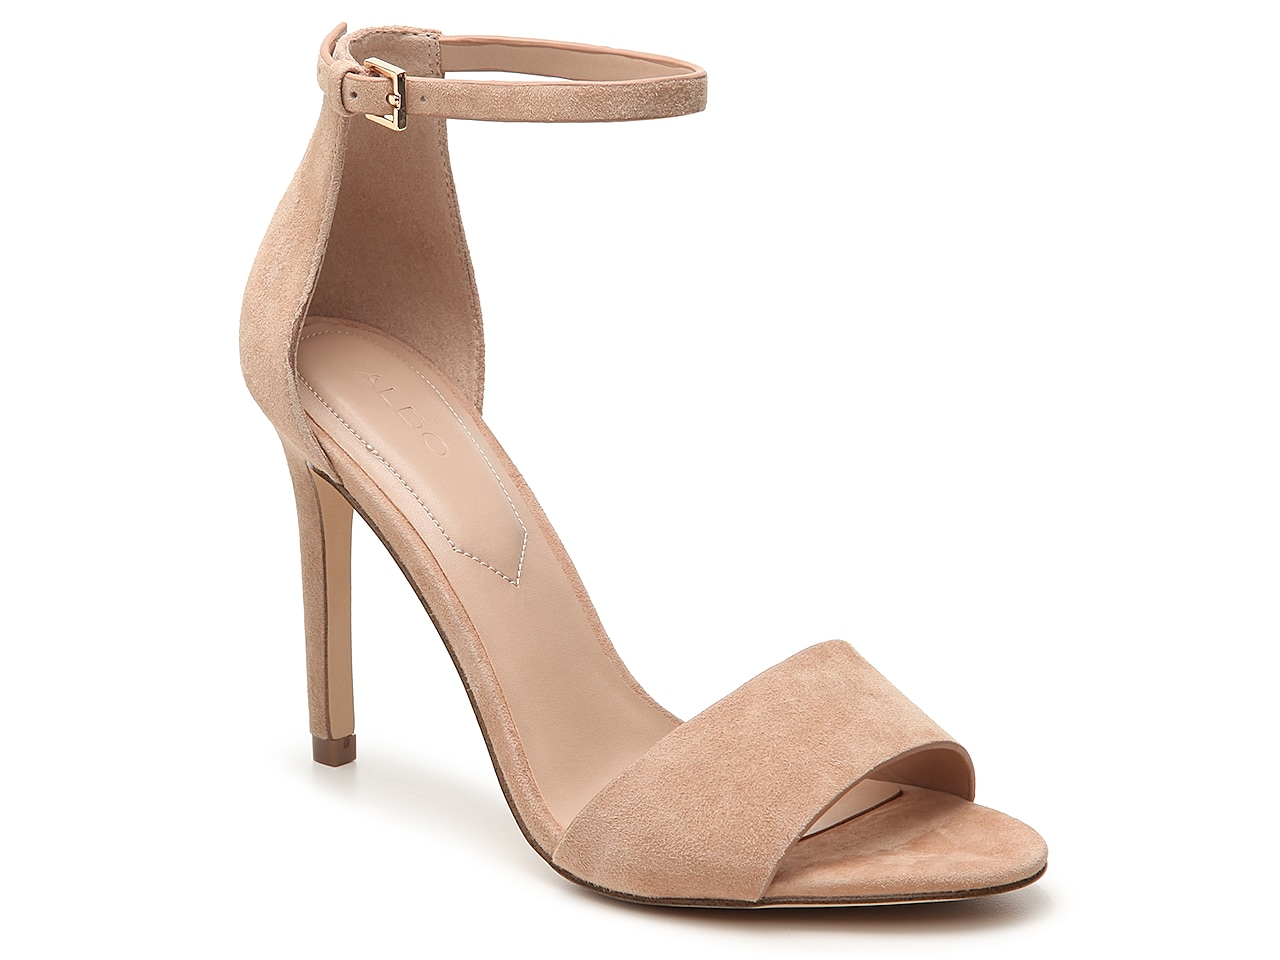 NEW Aldo Leather Shoes - Nude - Cork Wedge Sandals UK Size